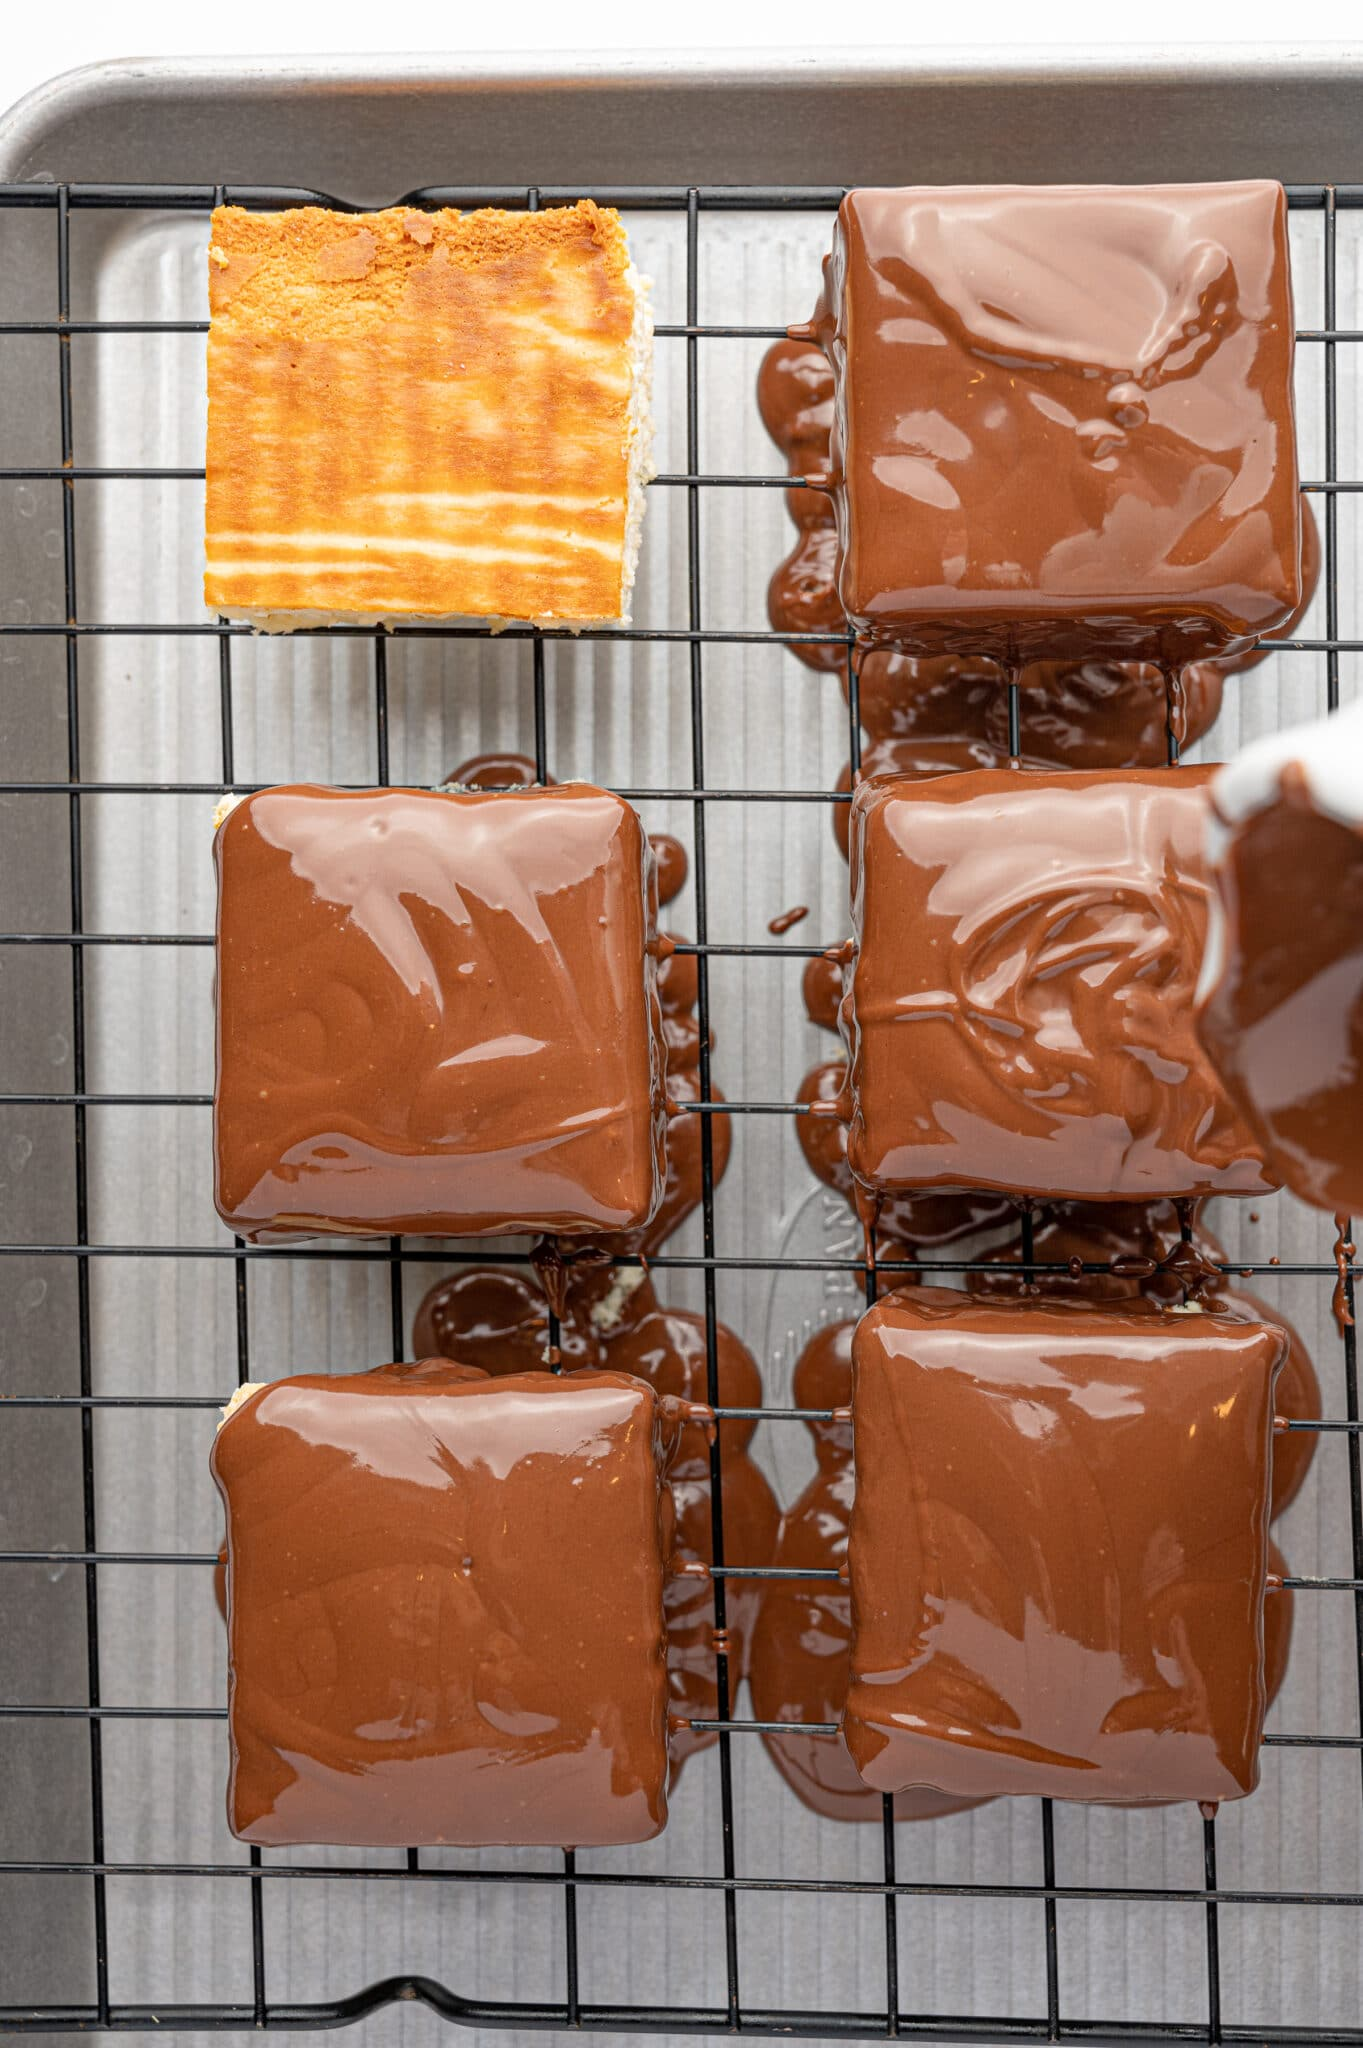 Square pieces of keto cheesecake bites being coated with melted milk chocolate.